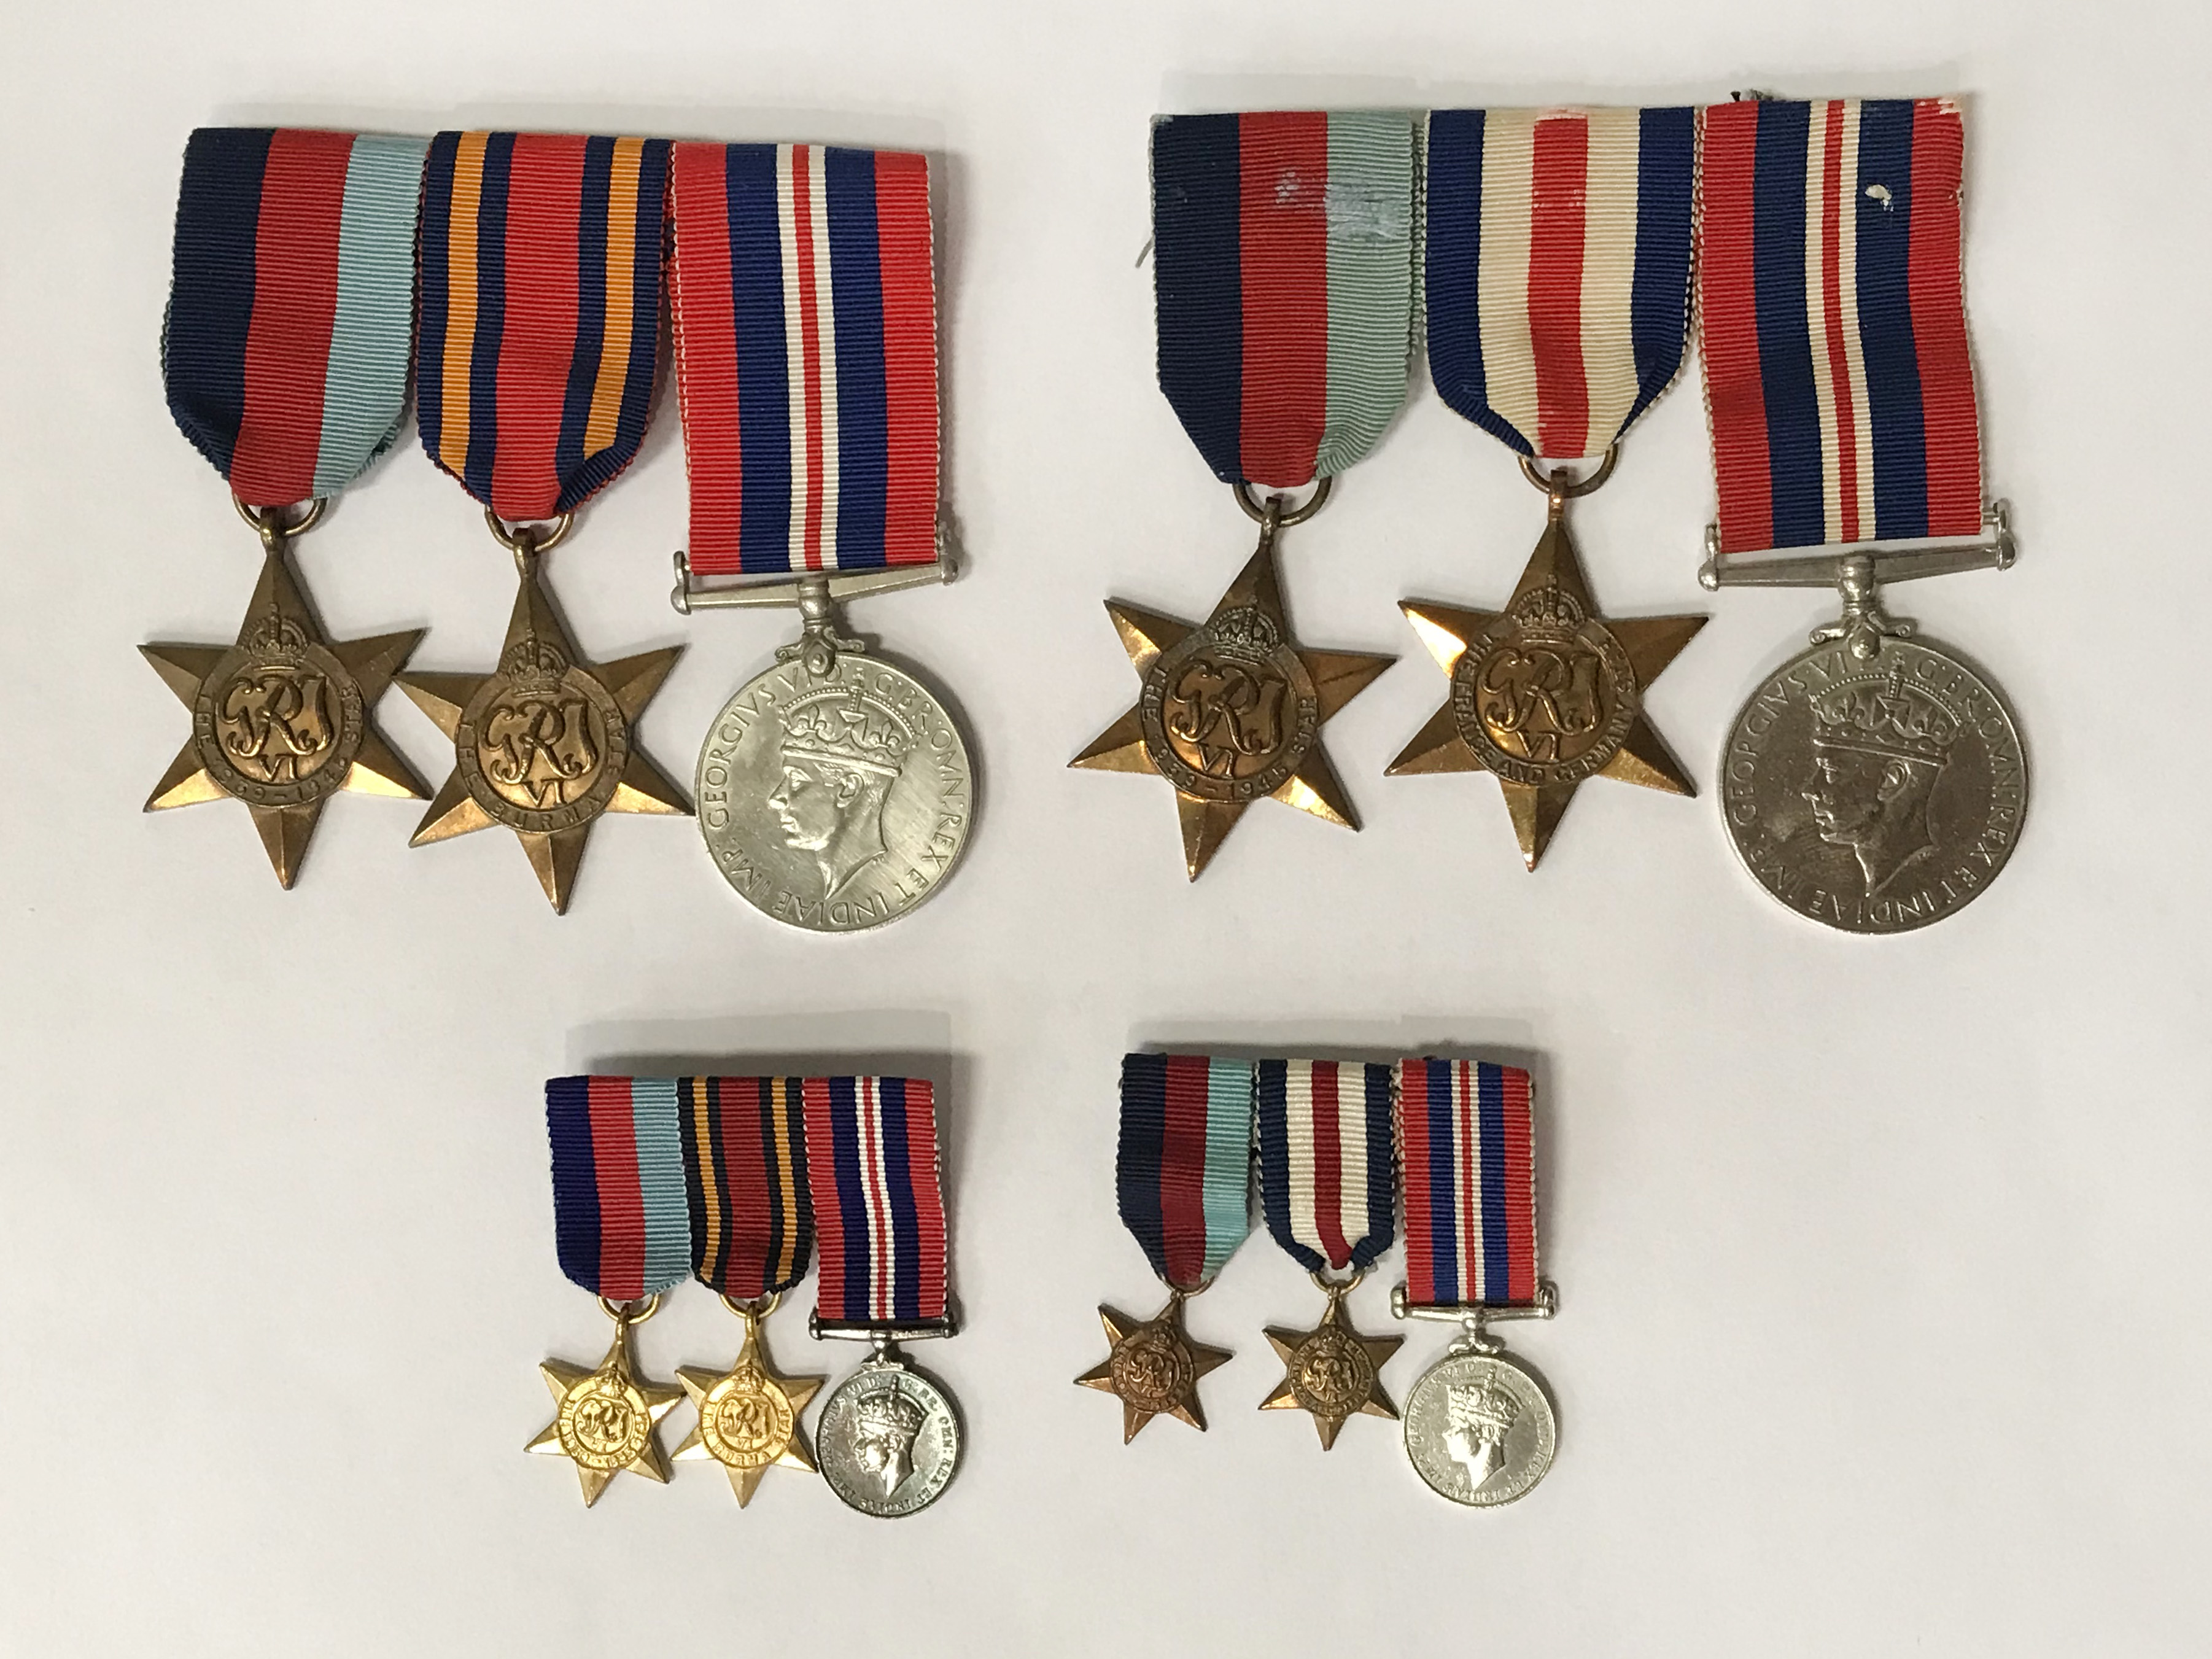 TWO SETS OF SERVICE MEDALS